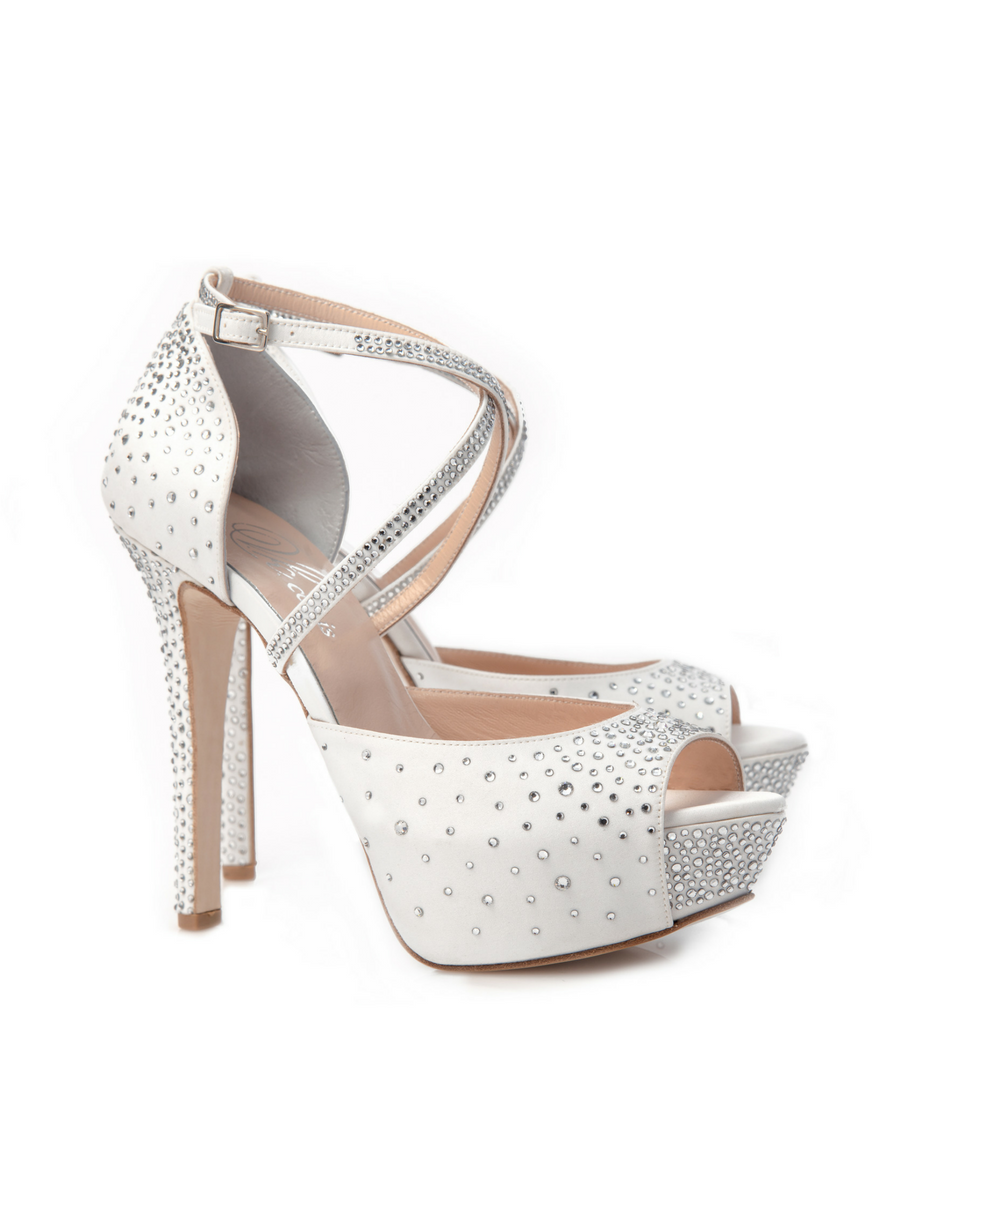 Bridal d'Orsay Ankle Crossed Strap With Swarowski Crystals Mod.2346